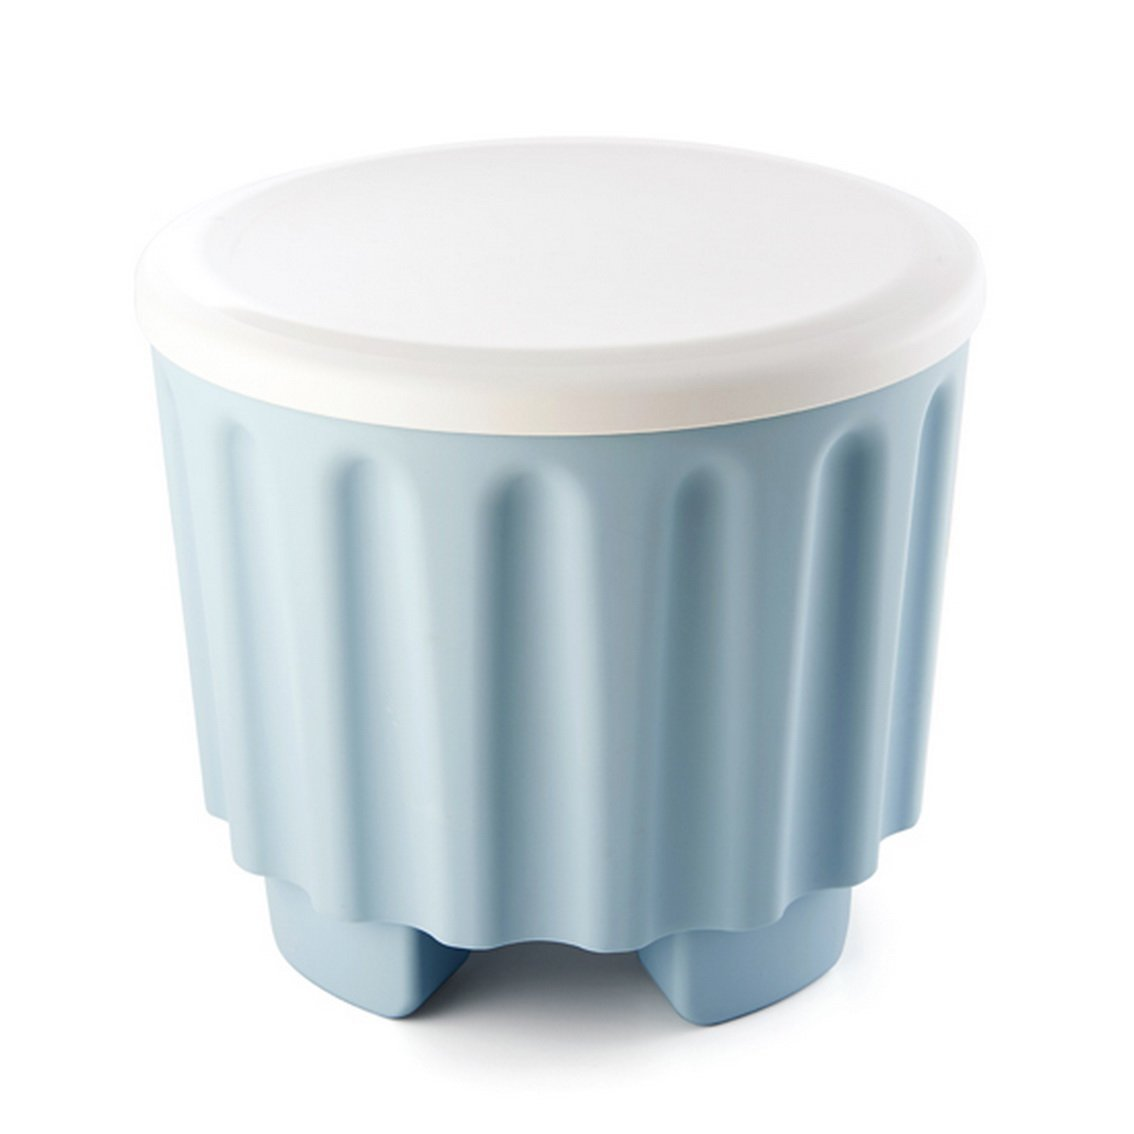 Color can be superimposed stool multifunctional storage stool changing his shoes stool to sit people plastic stool. Stool storage stool Stool storage stool stool stool Shoes stool